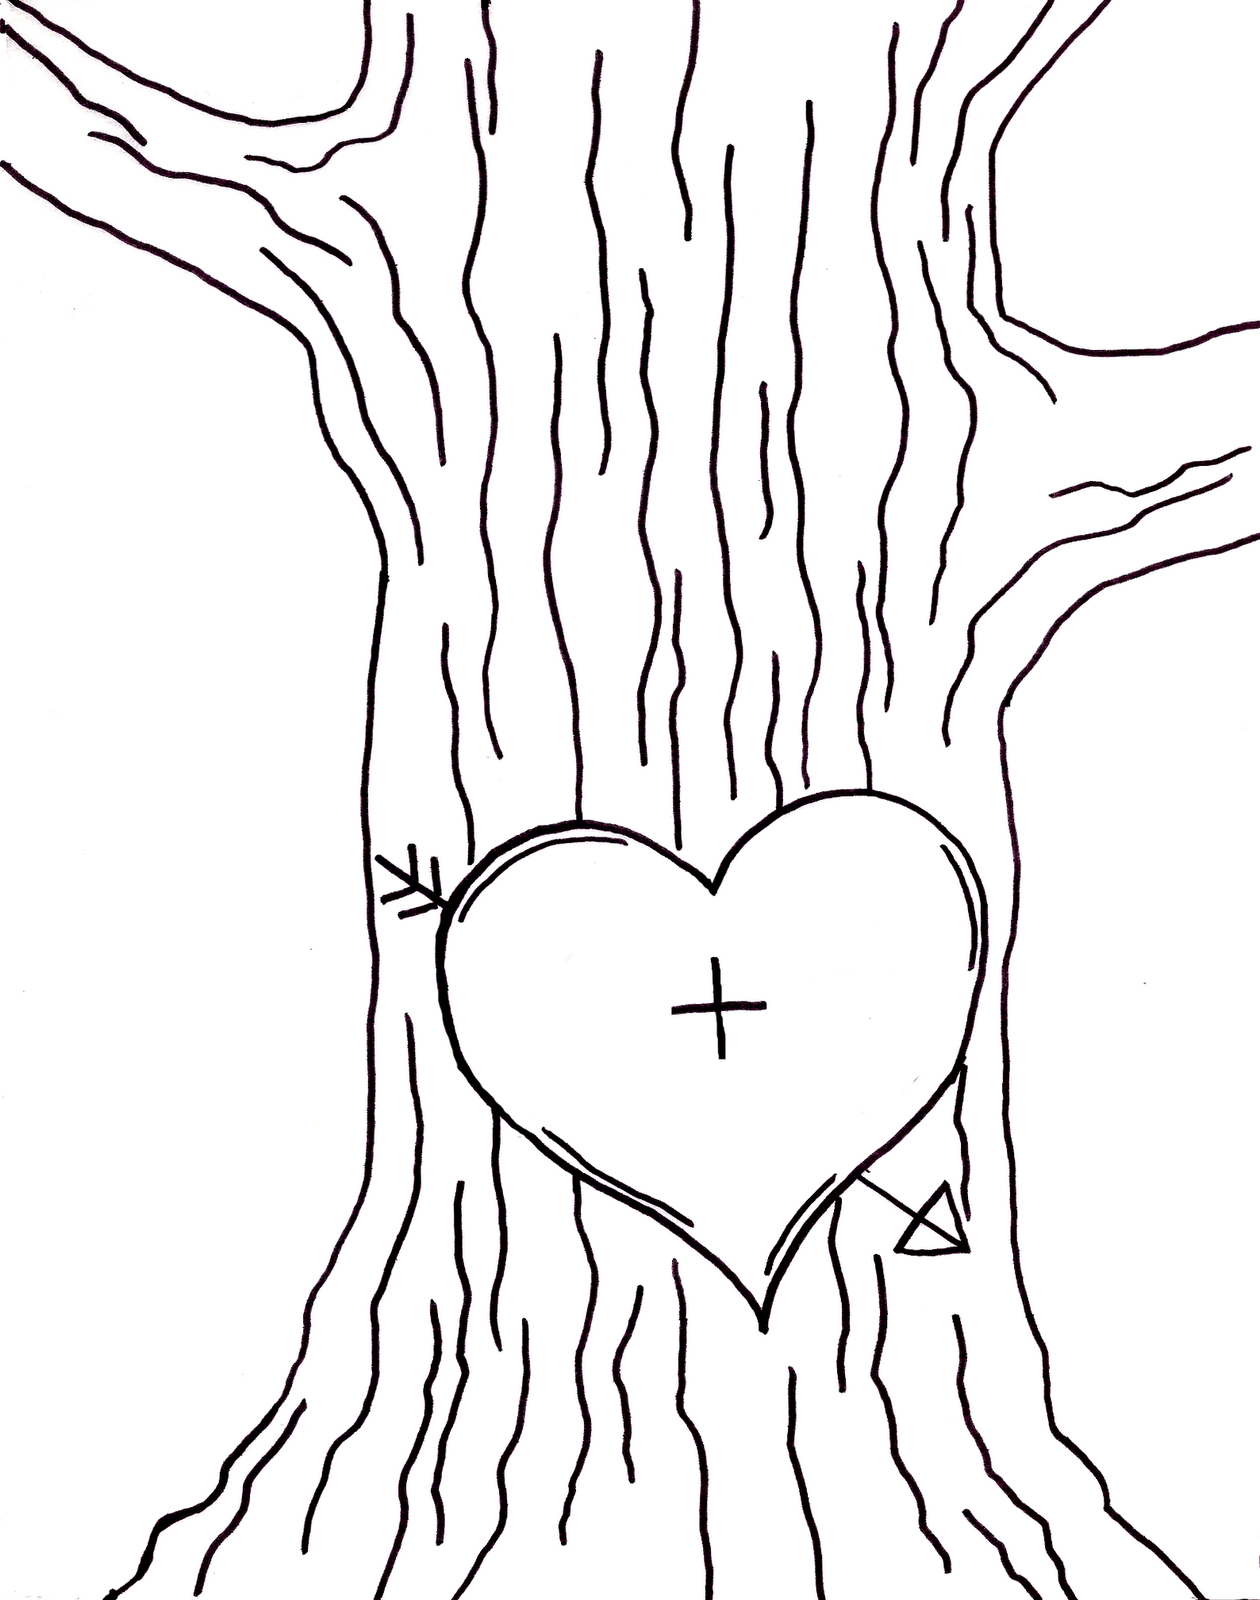 Heart Carved In Tree Clip Art Related Keywords & Suggestions.